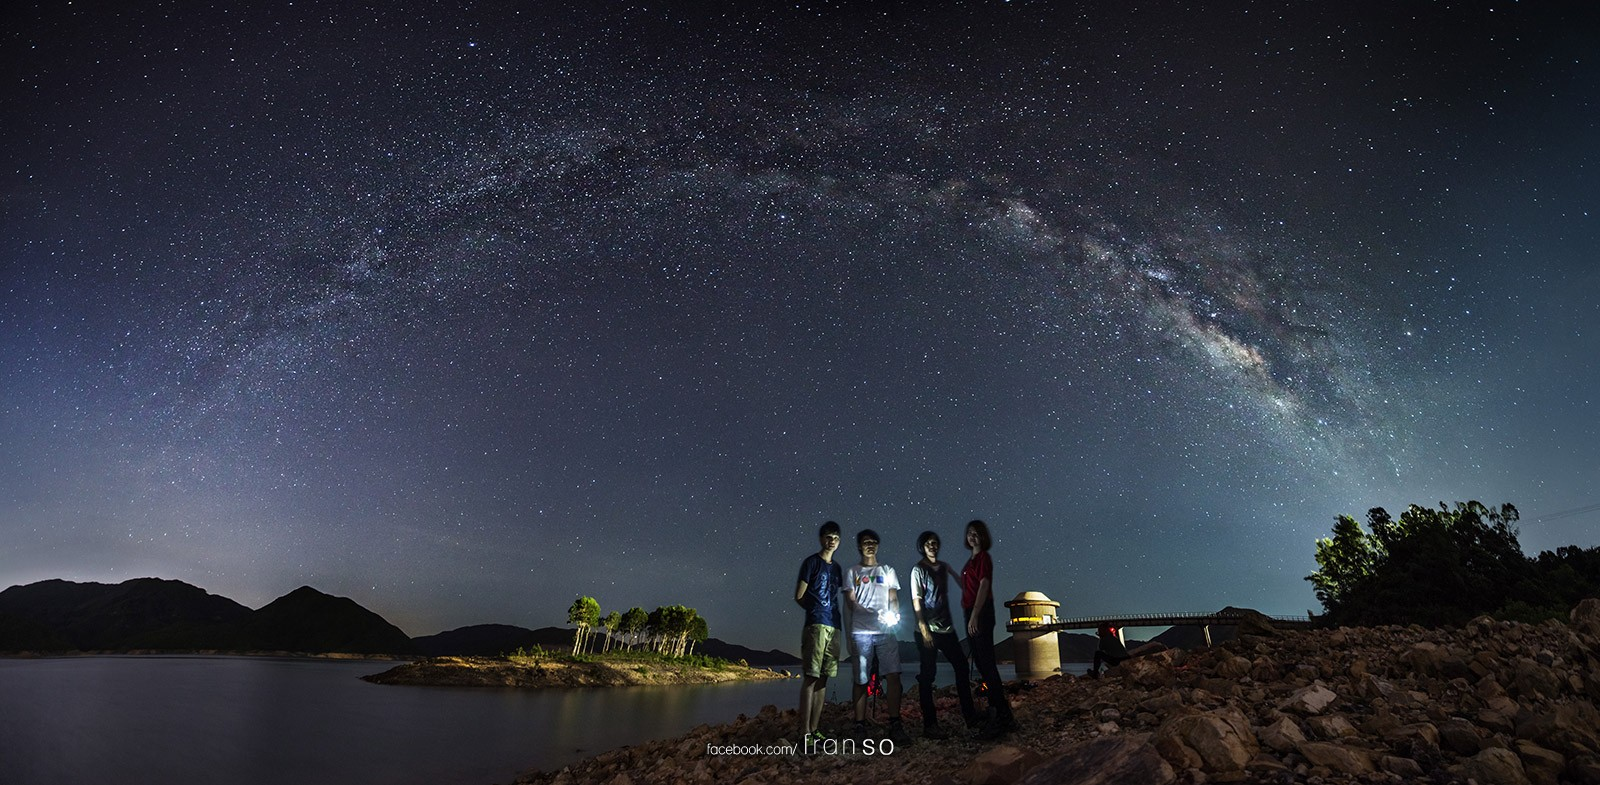 Starscape and Milkyway | Hong Kong | The Arch of the Milkyway  | West Dam of High Island Reservoir